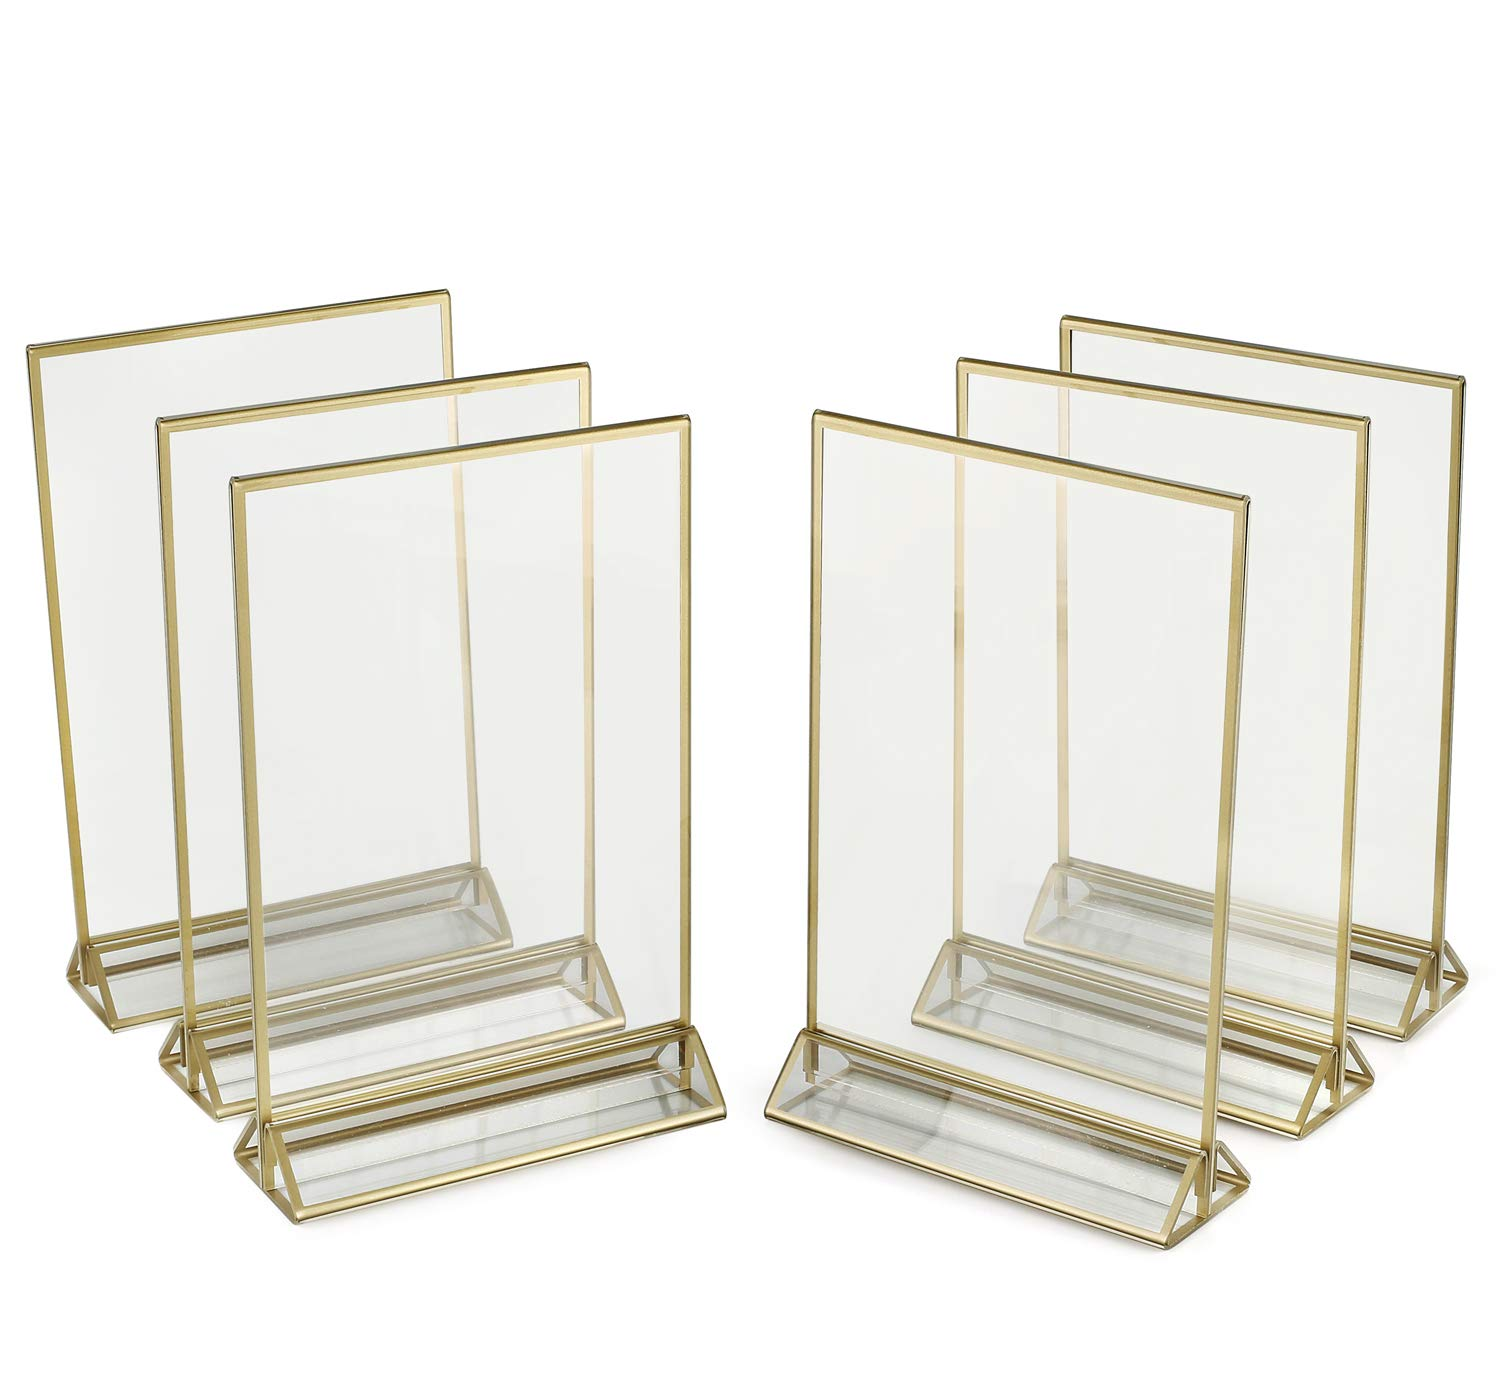 Pack of 6 SUPER STAR QUALITY Clear Acrylic 2 Sided Frames Display Holder with Vertical Stand and 3mm Silver Border 5 x 7-Inches